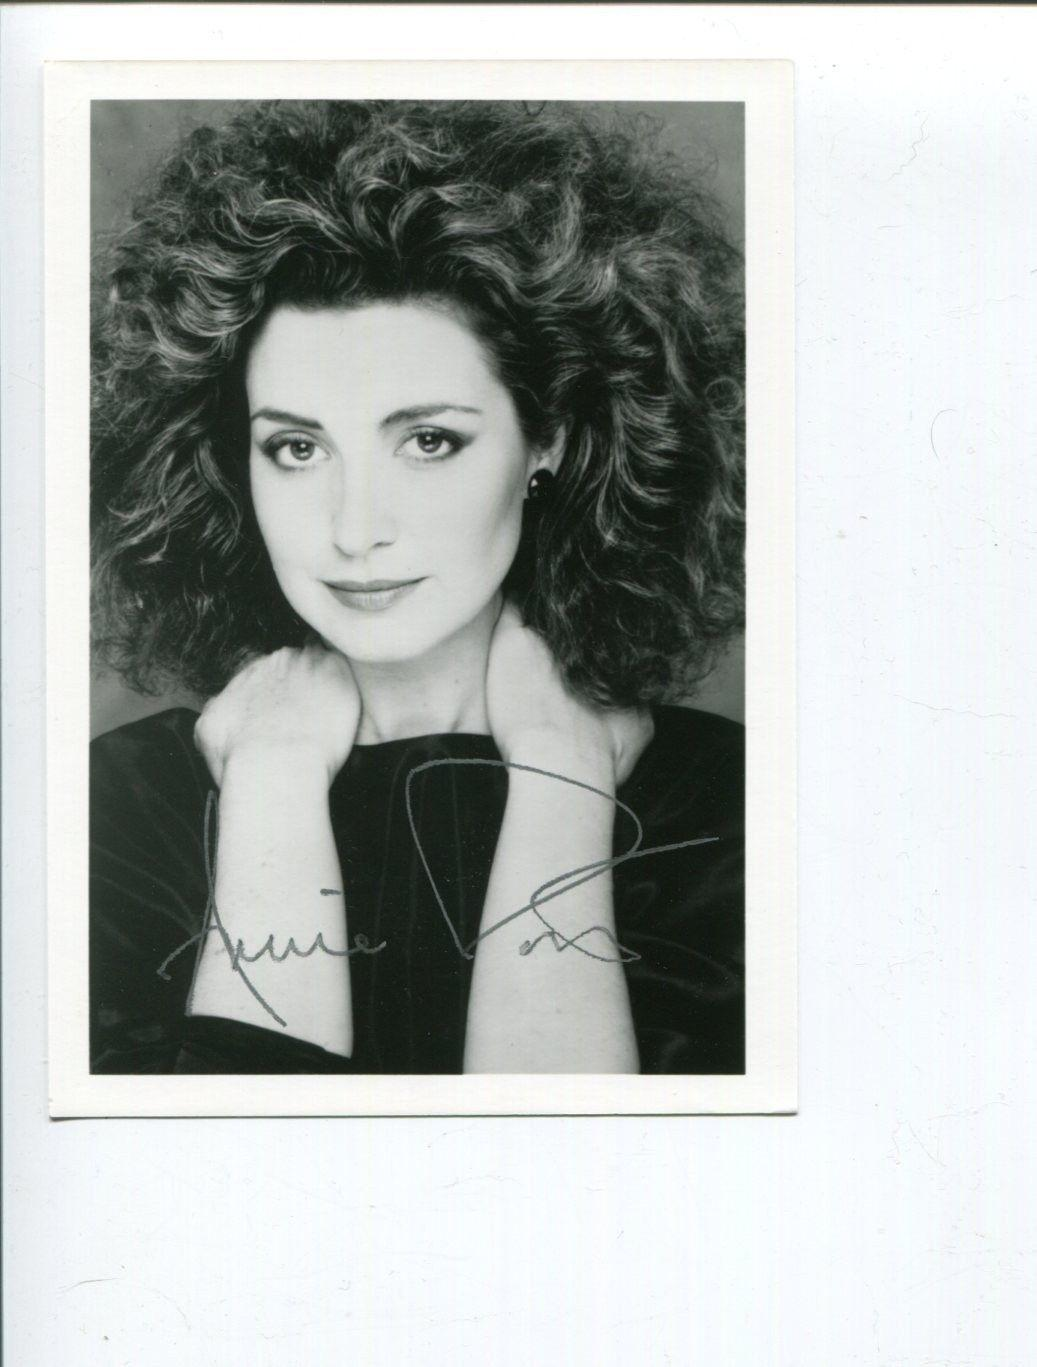 Annie Potts Toy Story Designing Women Star Signed Autograph Photo